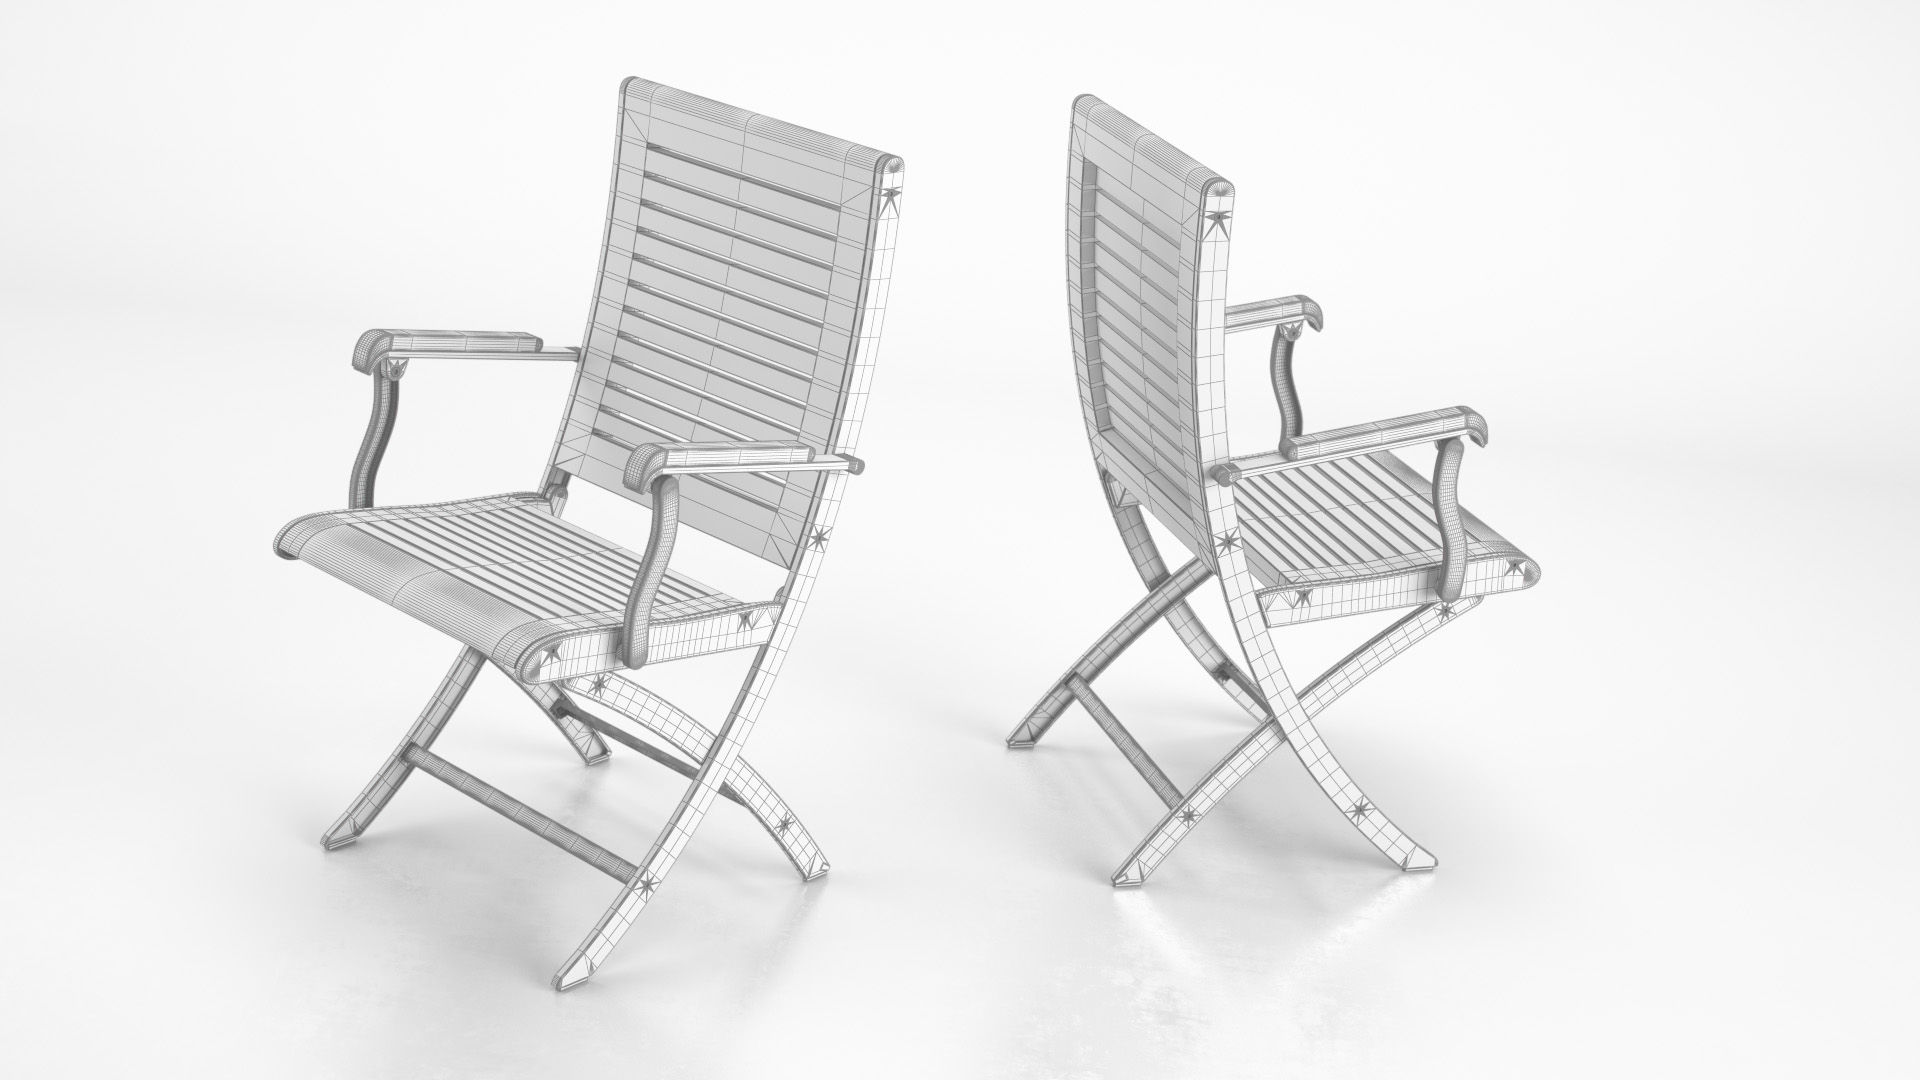 Metalic_Garden_Armchair_WhiteSet_01_wire_0003